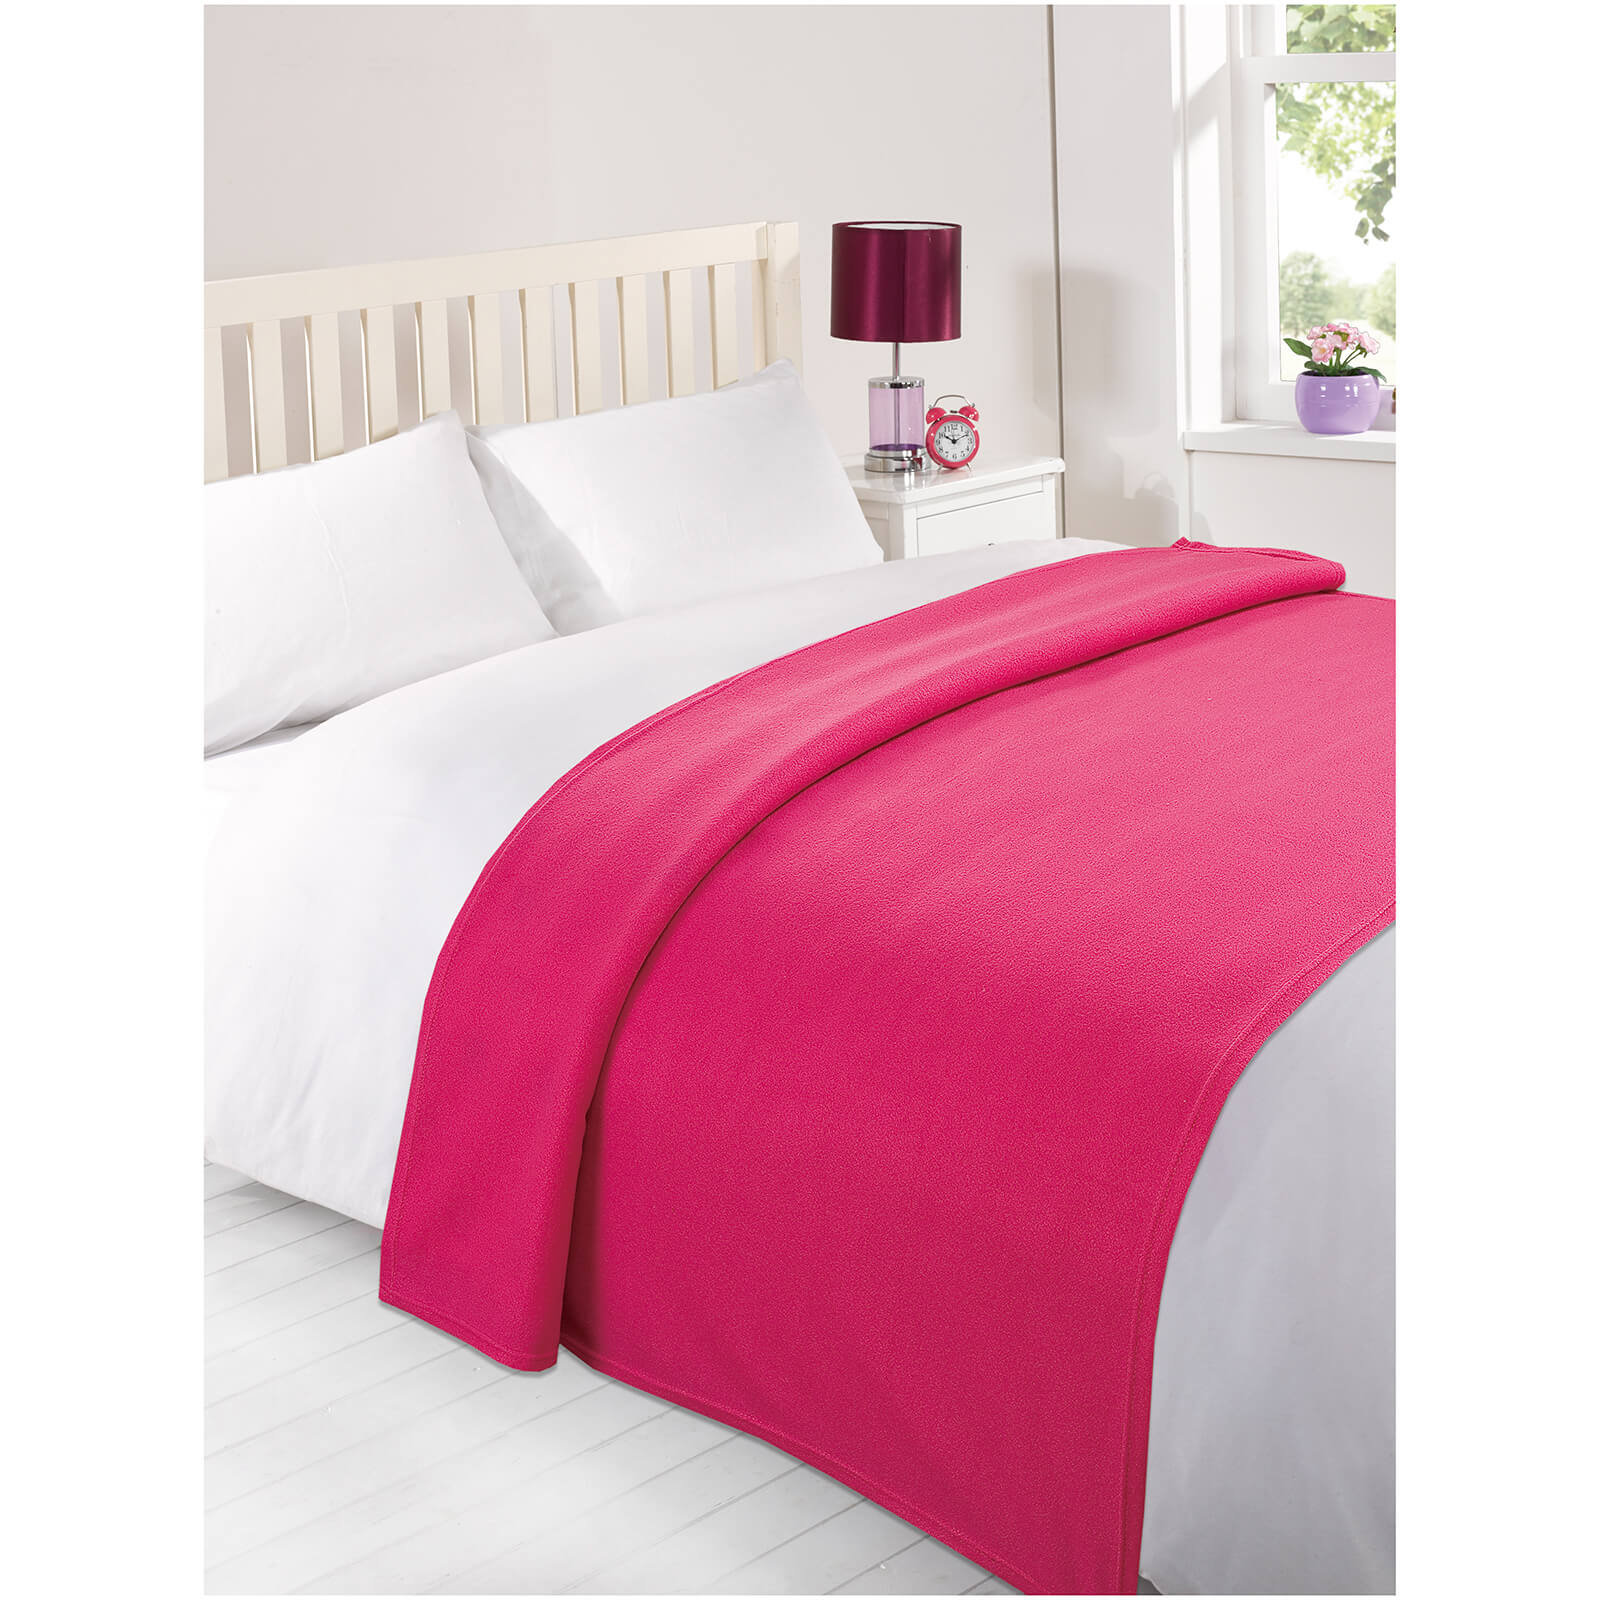 Dreamscene Soft Fleece Throw (120 x 150cm) - Pink